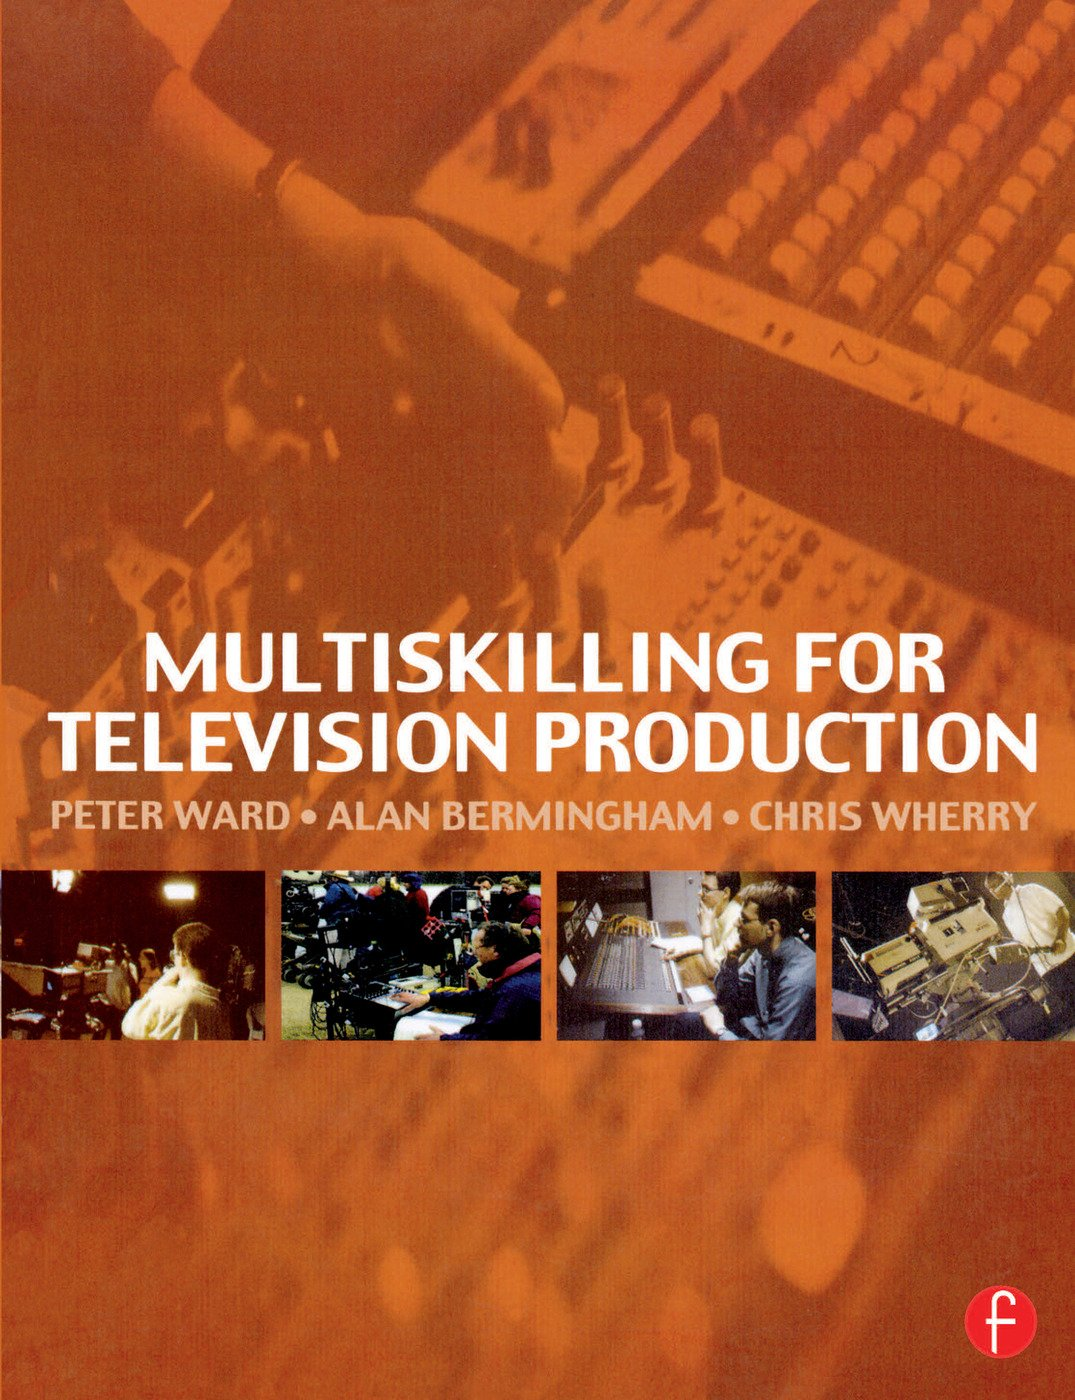 Multiskilling for Television Production